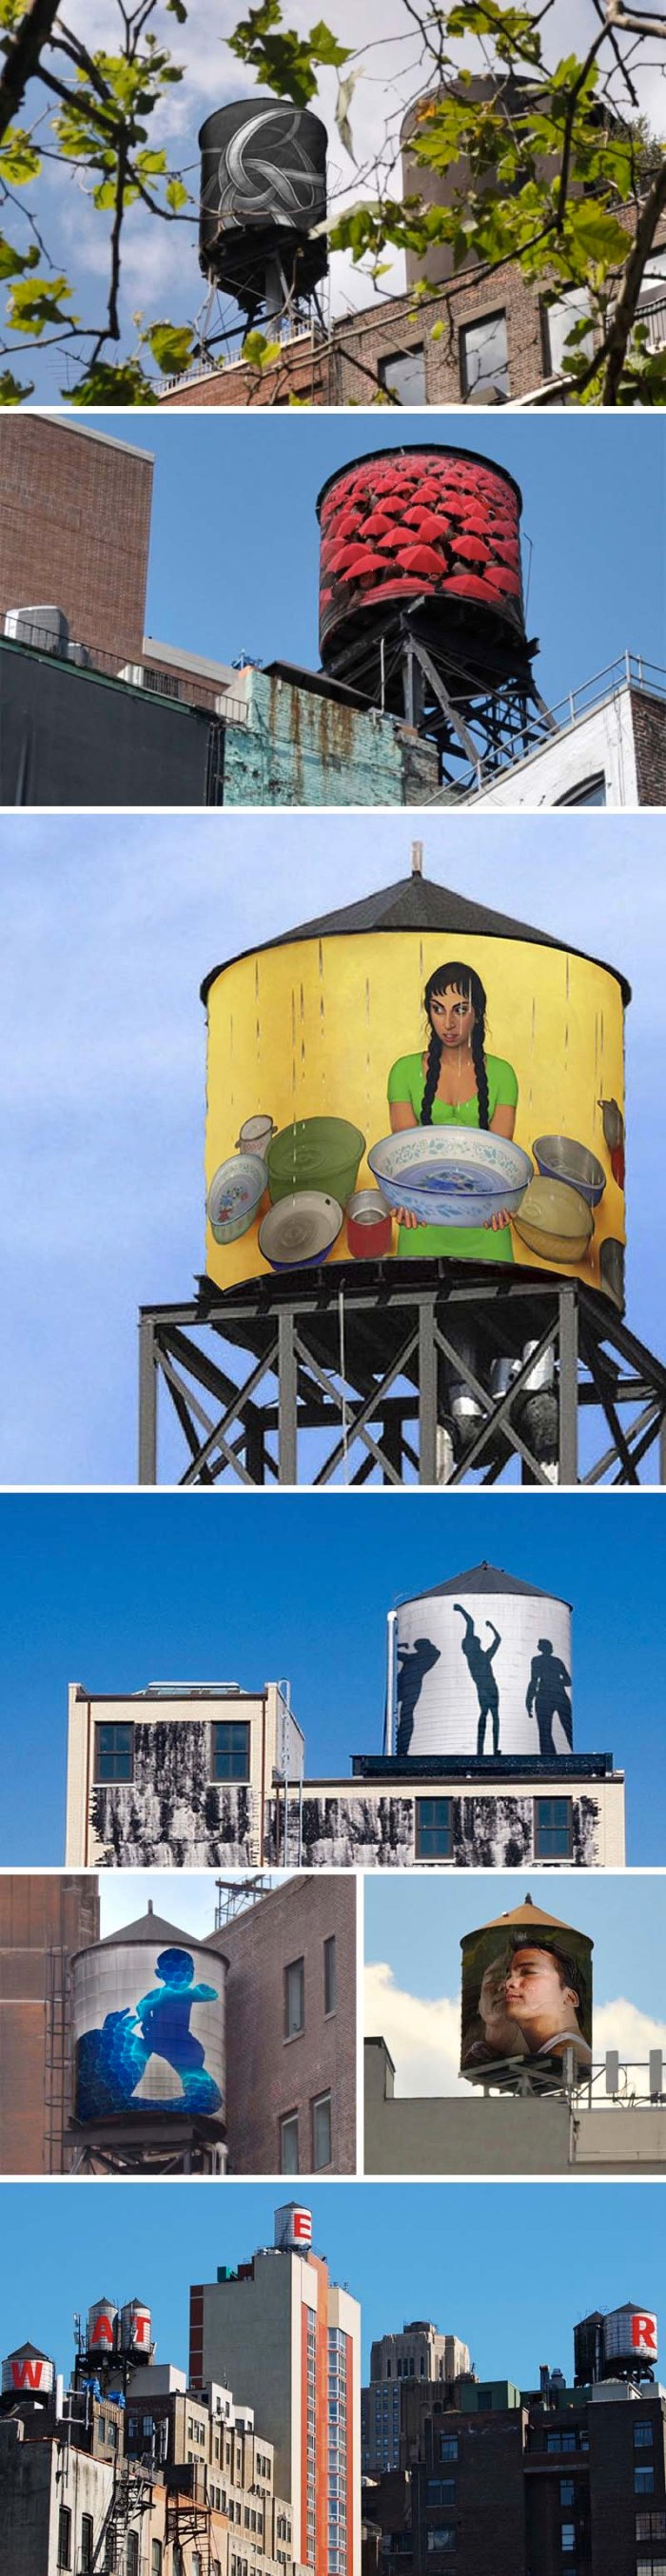 The Water Tank Project, Word Above the Street, Mary Jordan, 100 water tanks in nyc wrapped in artists's works to raise environmental awareness. NYC. Art and awareness